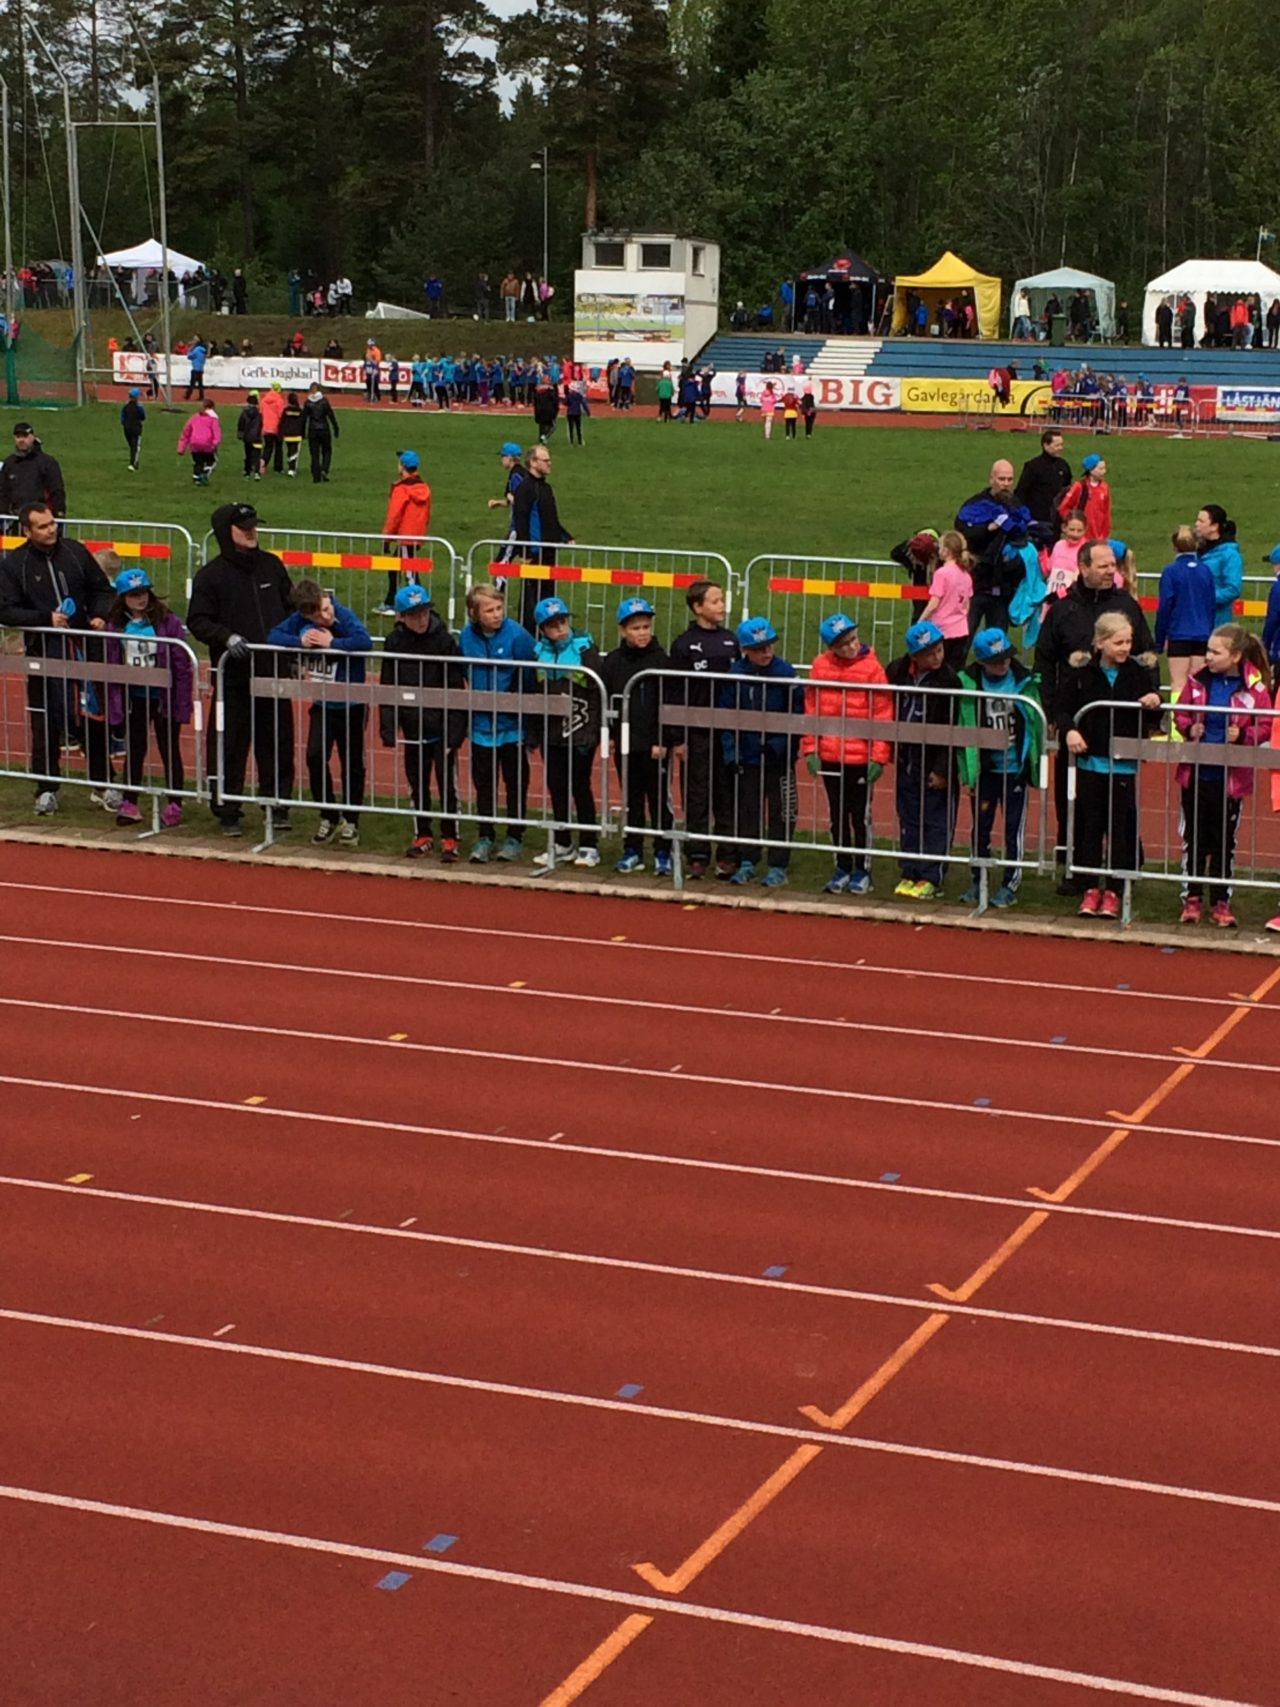 Running Competition At An Athletics Arena With An Audience On The Side